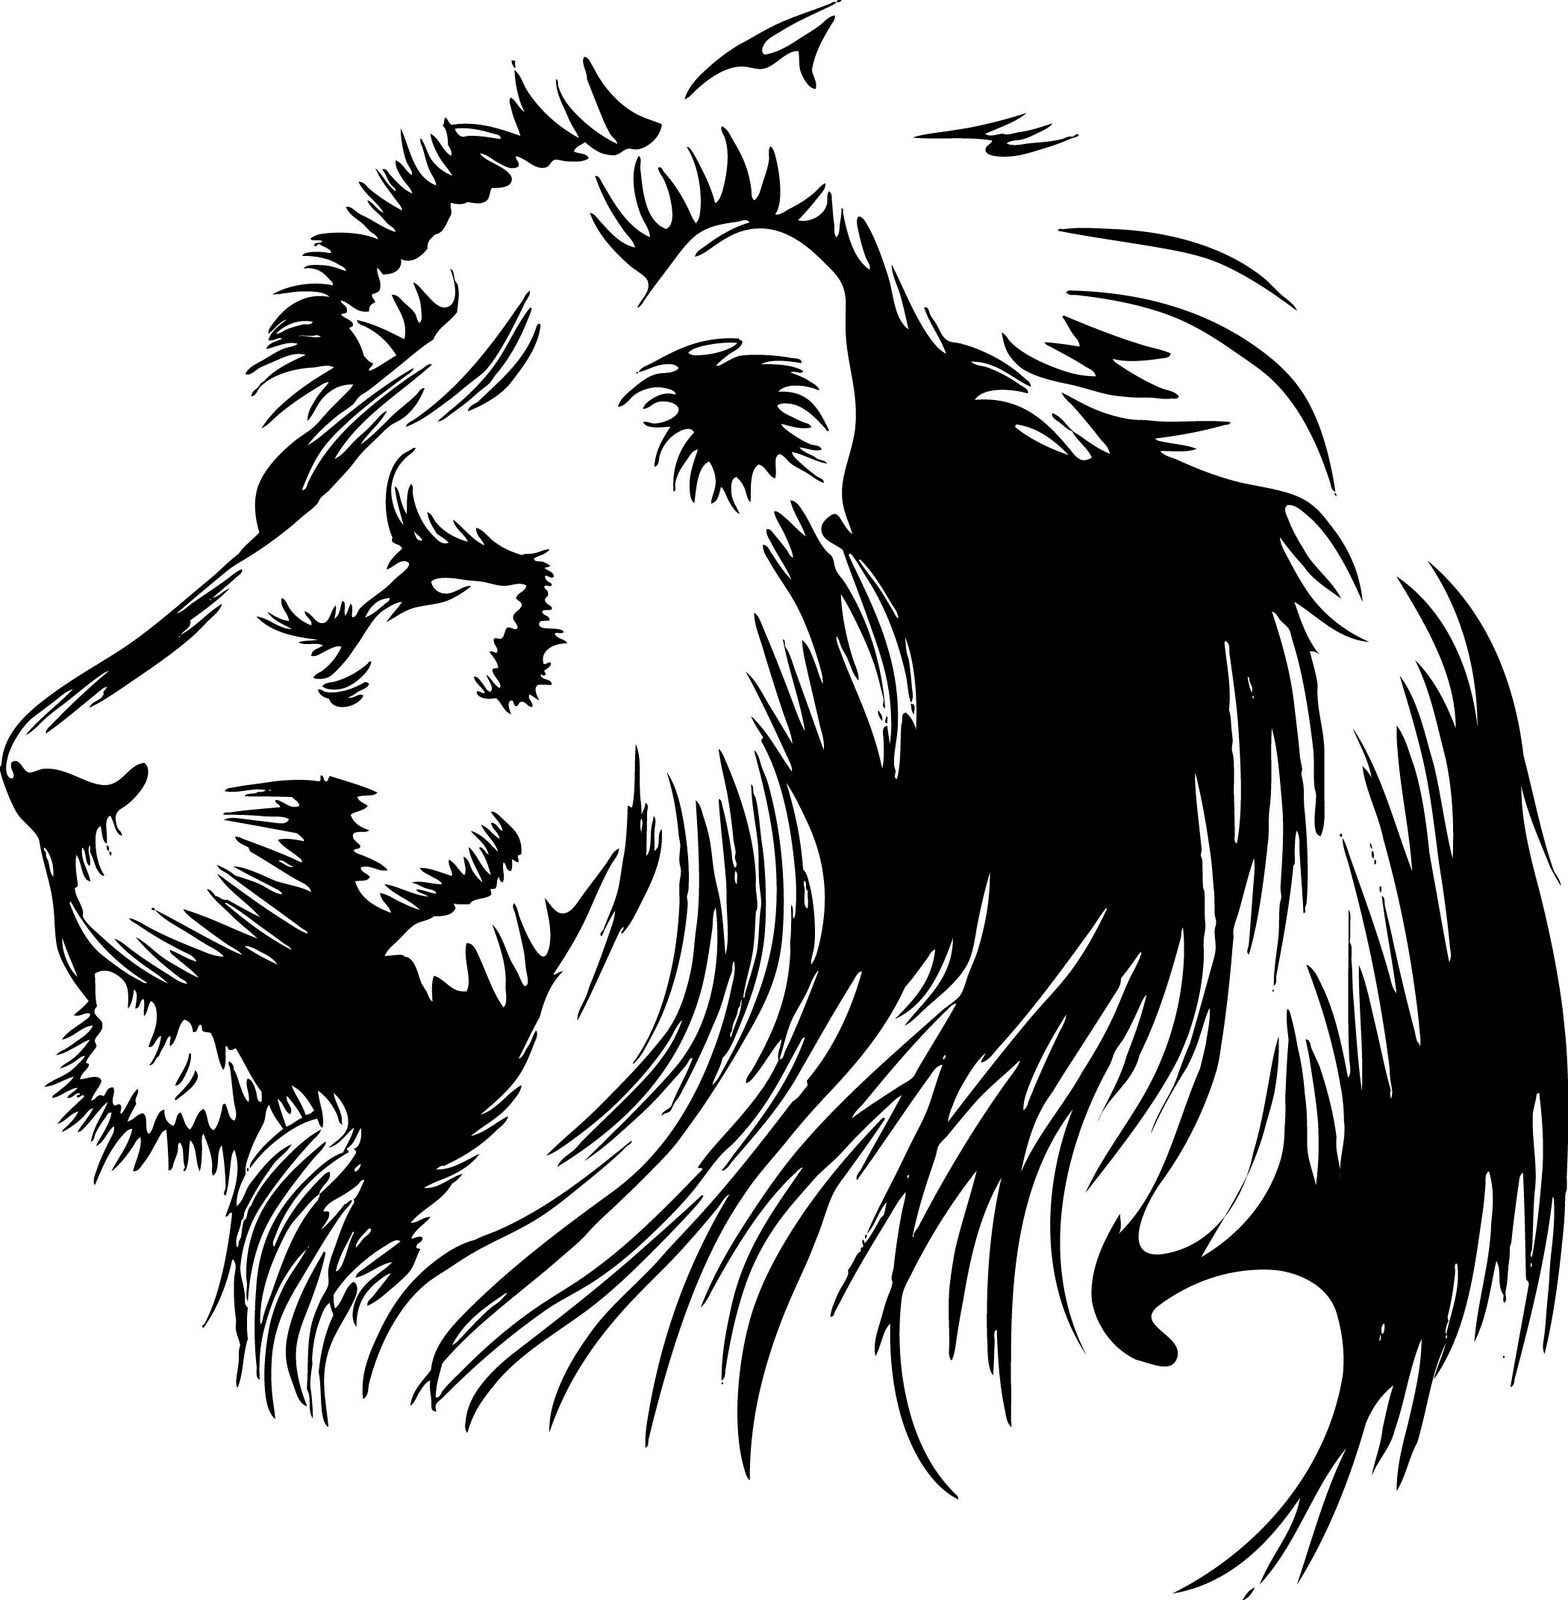 Line Drawing Lion Head : Vectorian art lion head vectorfree download free